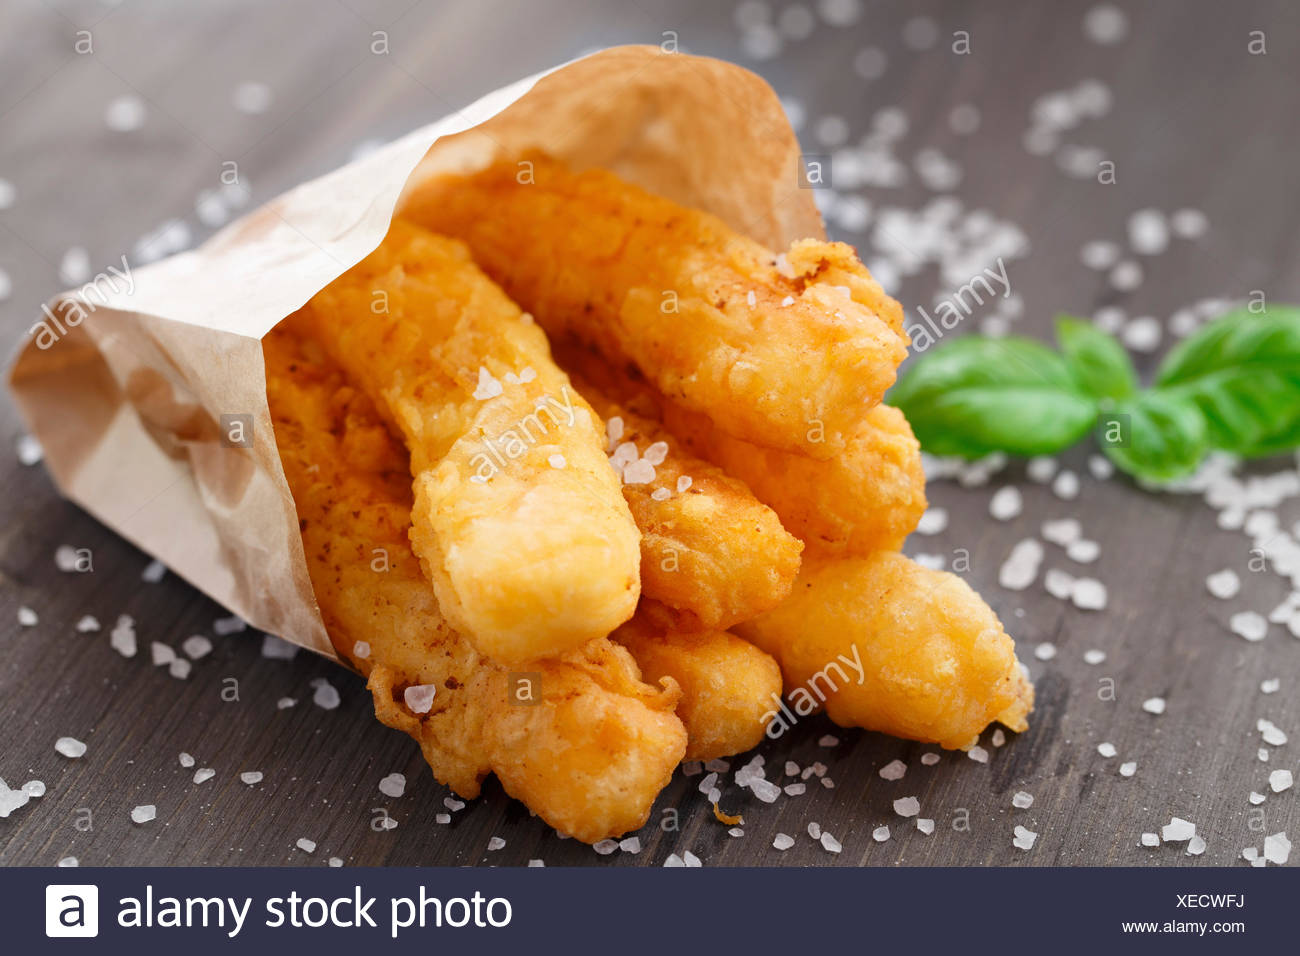 Delicious deep fried cheese sticks on a table - Stock Image